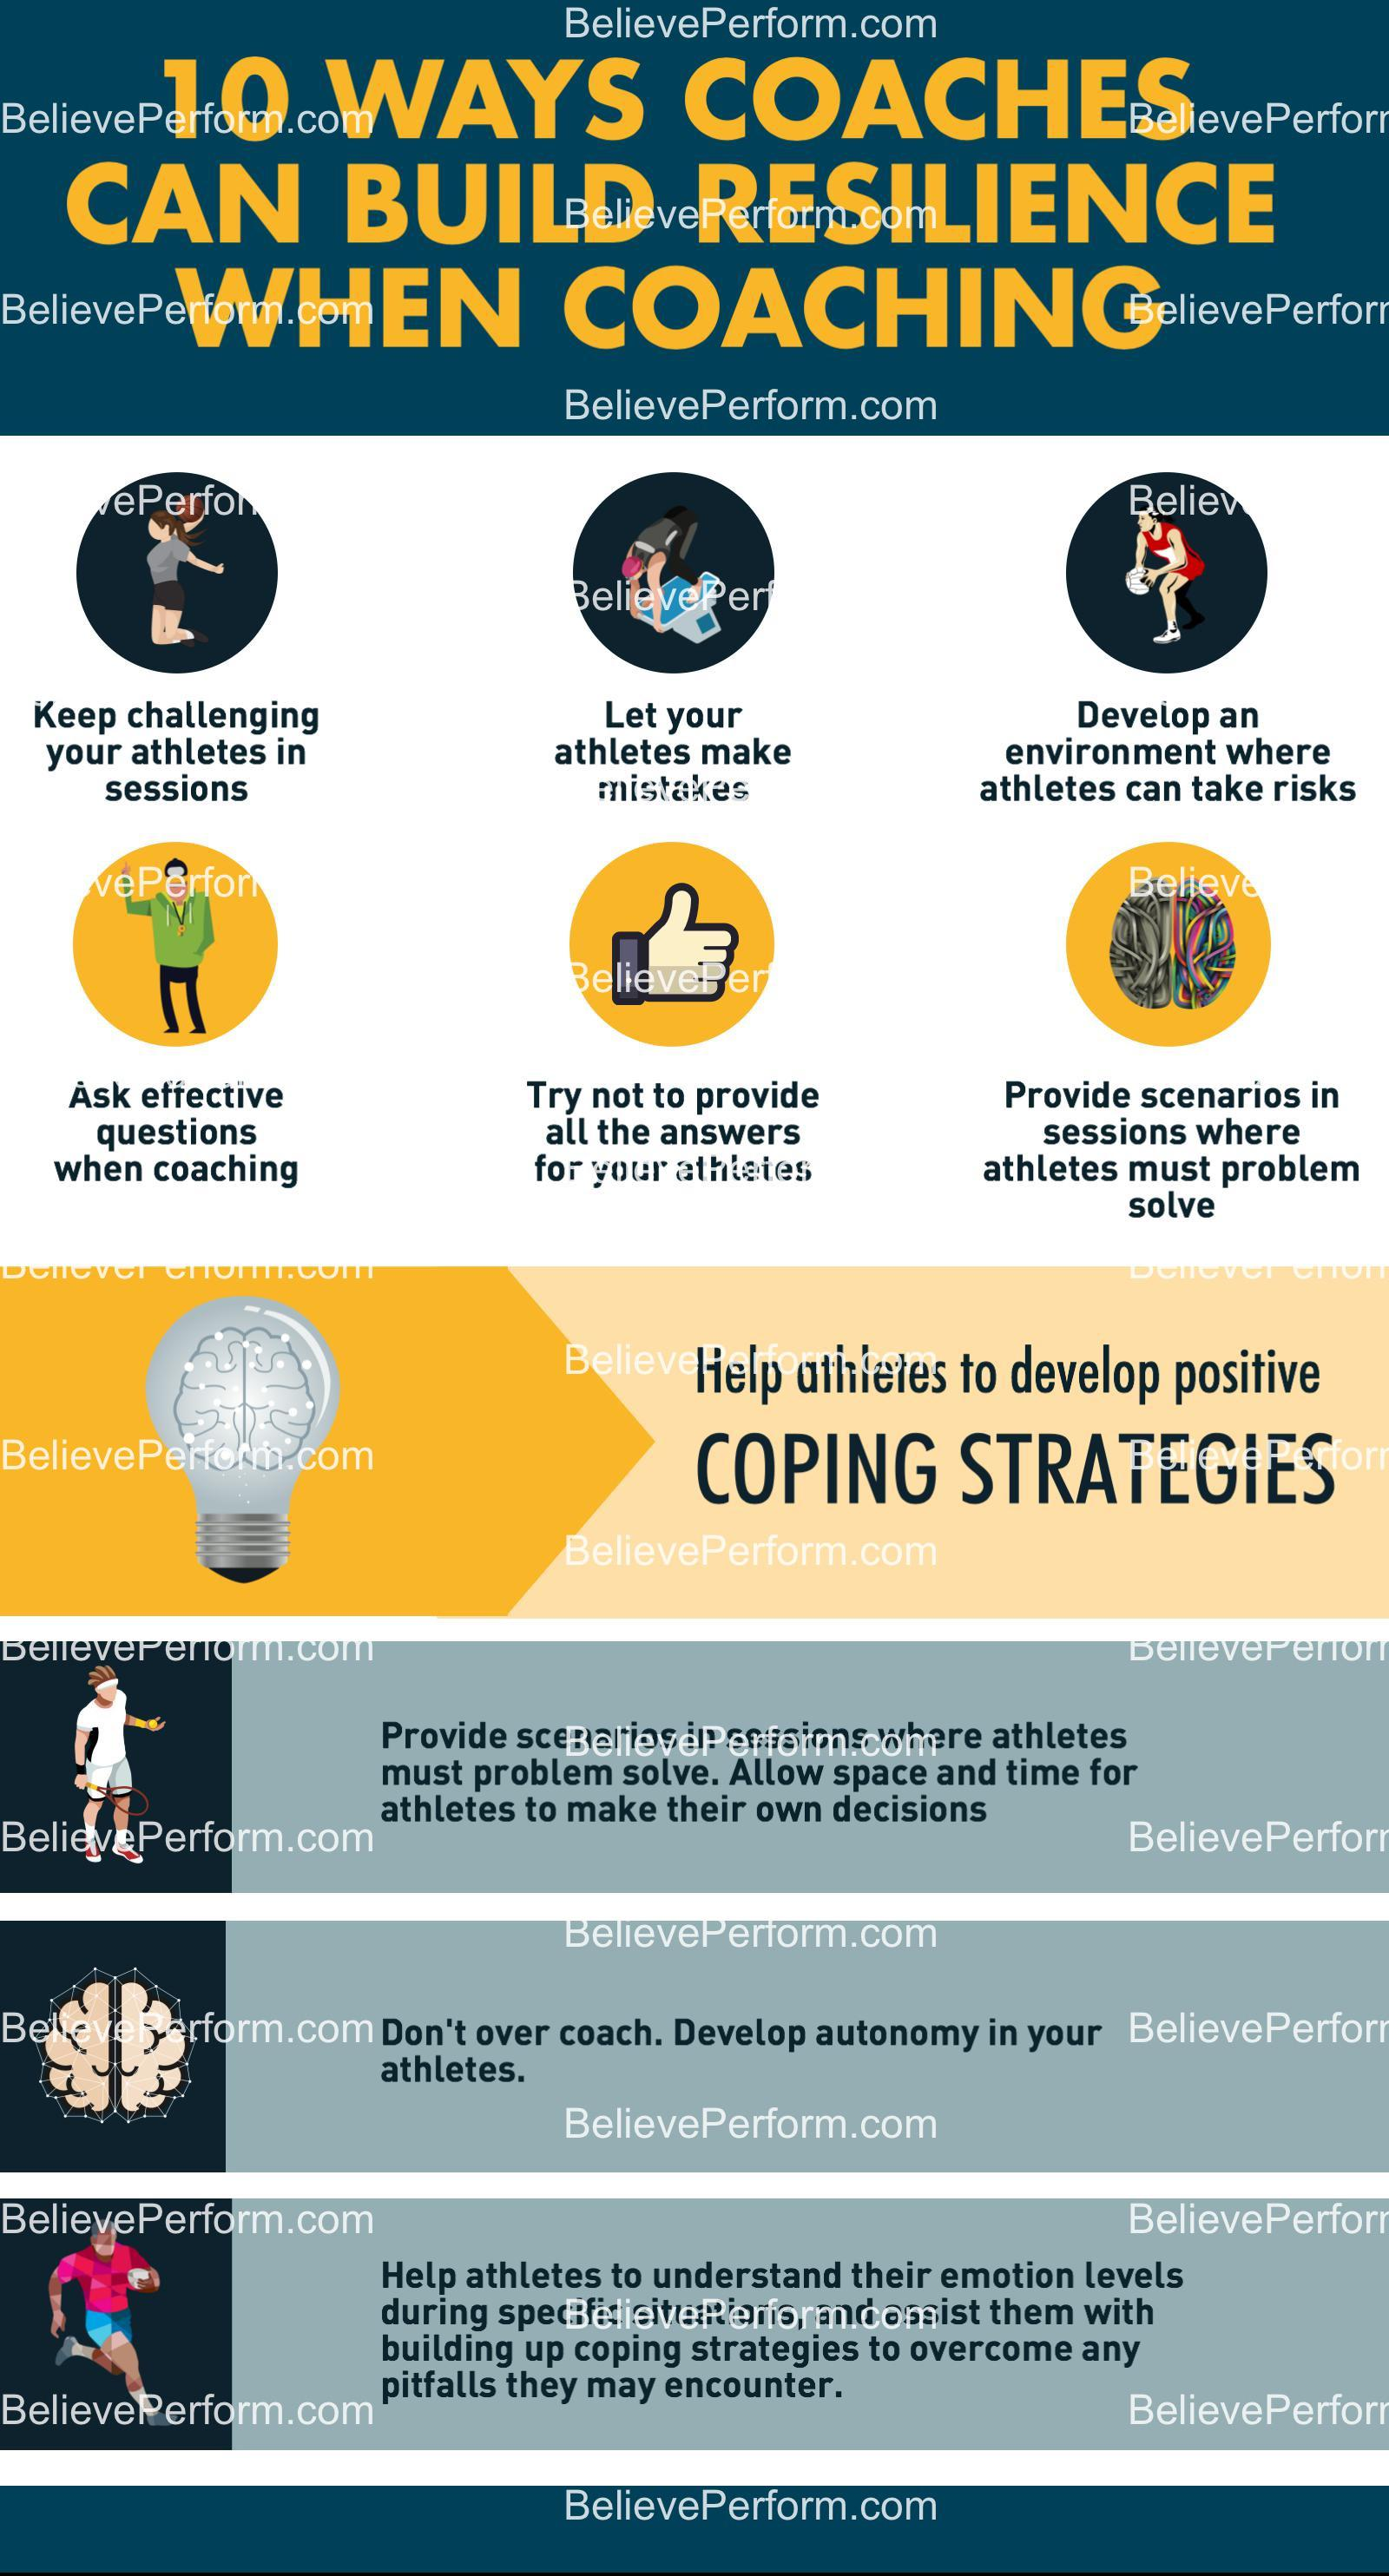 10 ways coaches can build resilience when coaching